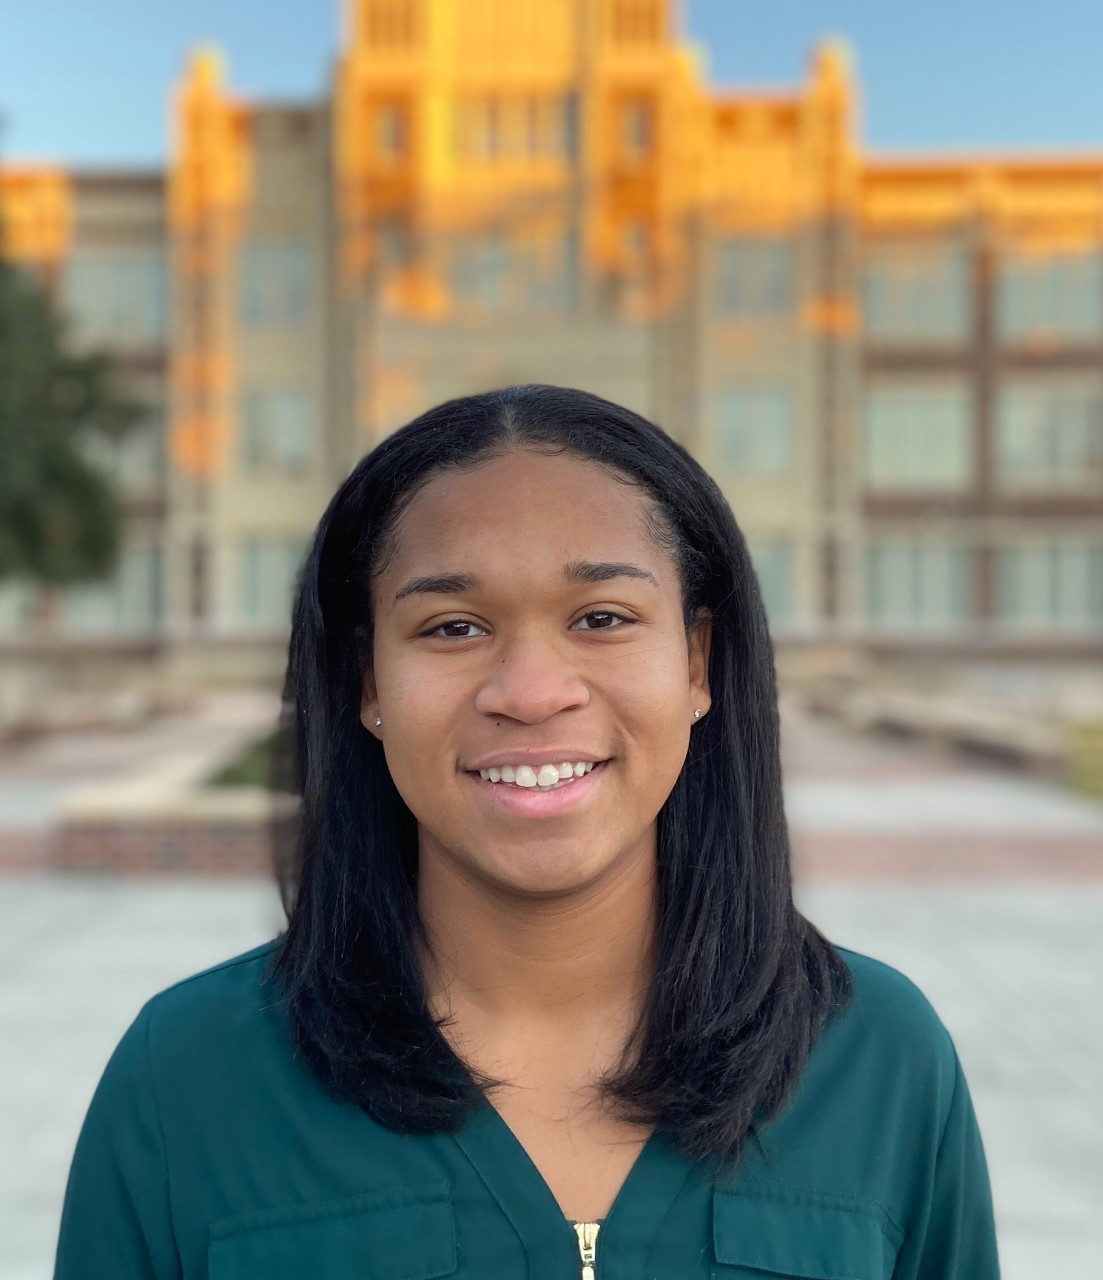 BRMHS Student of the Year and EBR Finalist – Autumn Edwards